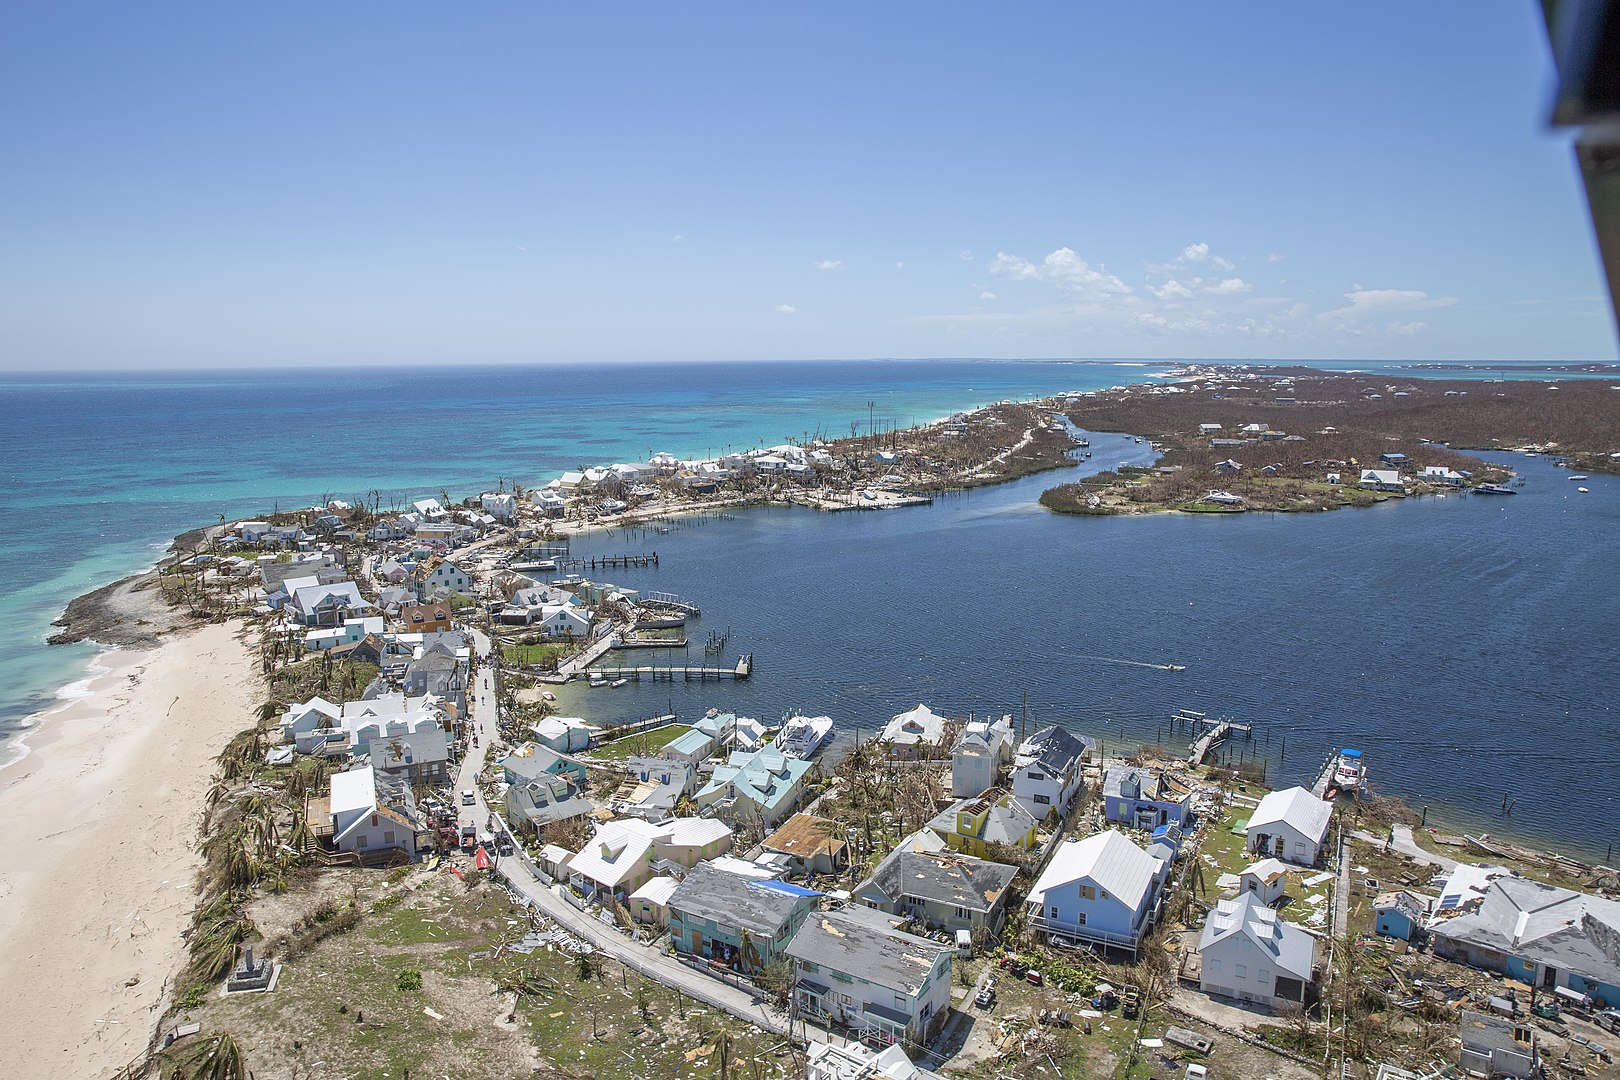 On the brightside: How to help the Bahamas after Hurricane Dorian